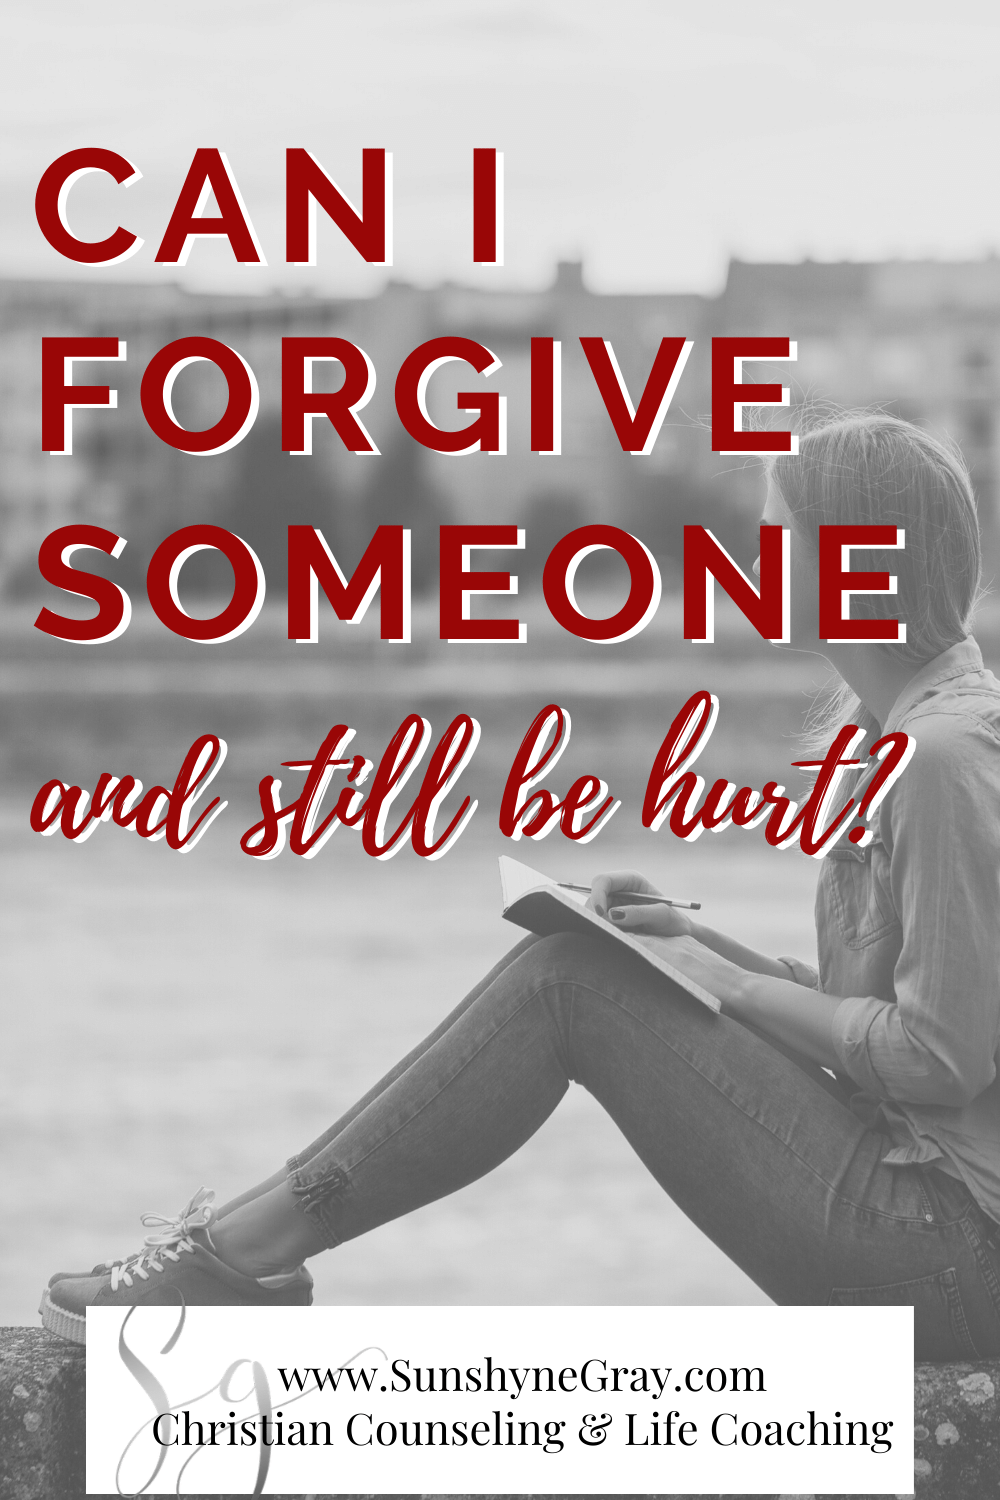 We often wonder if we can forgive someone and still be hurt. The answer is yes! Learn how the healing process comes after forgiveness. Also, how to forgive, even when it's hard. #forgiveness #mentalhealth #wellness #christiancounseling